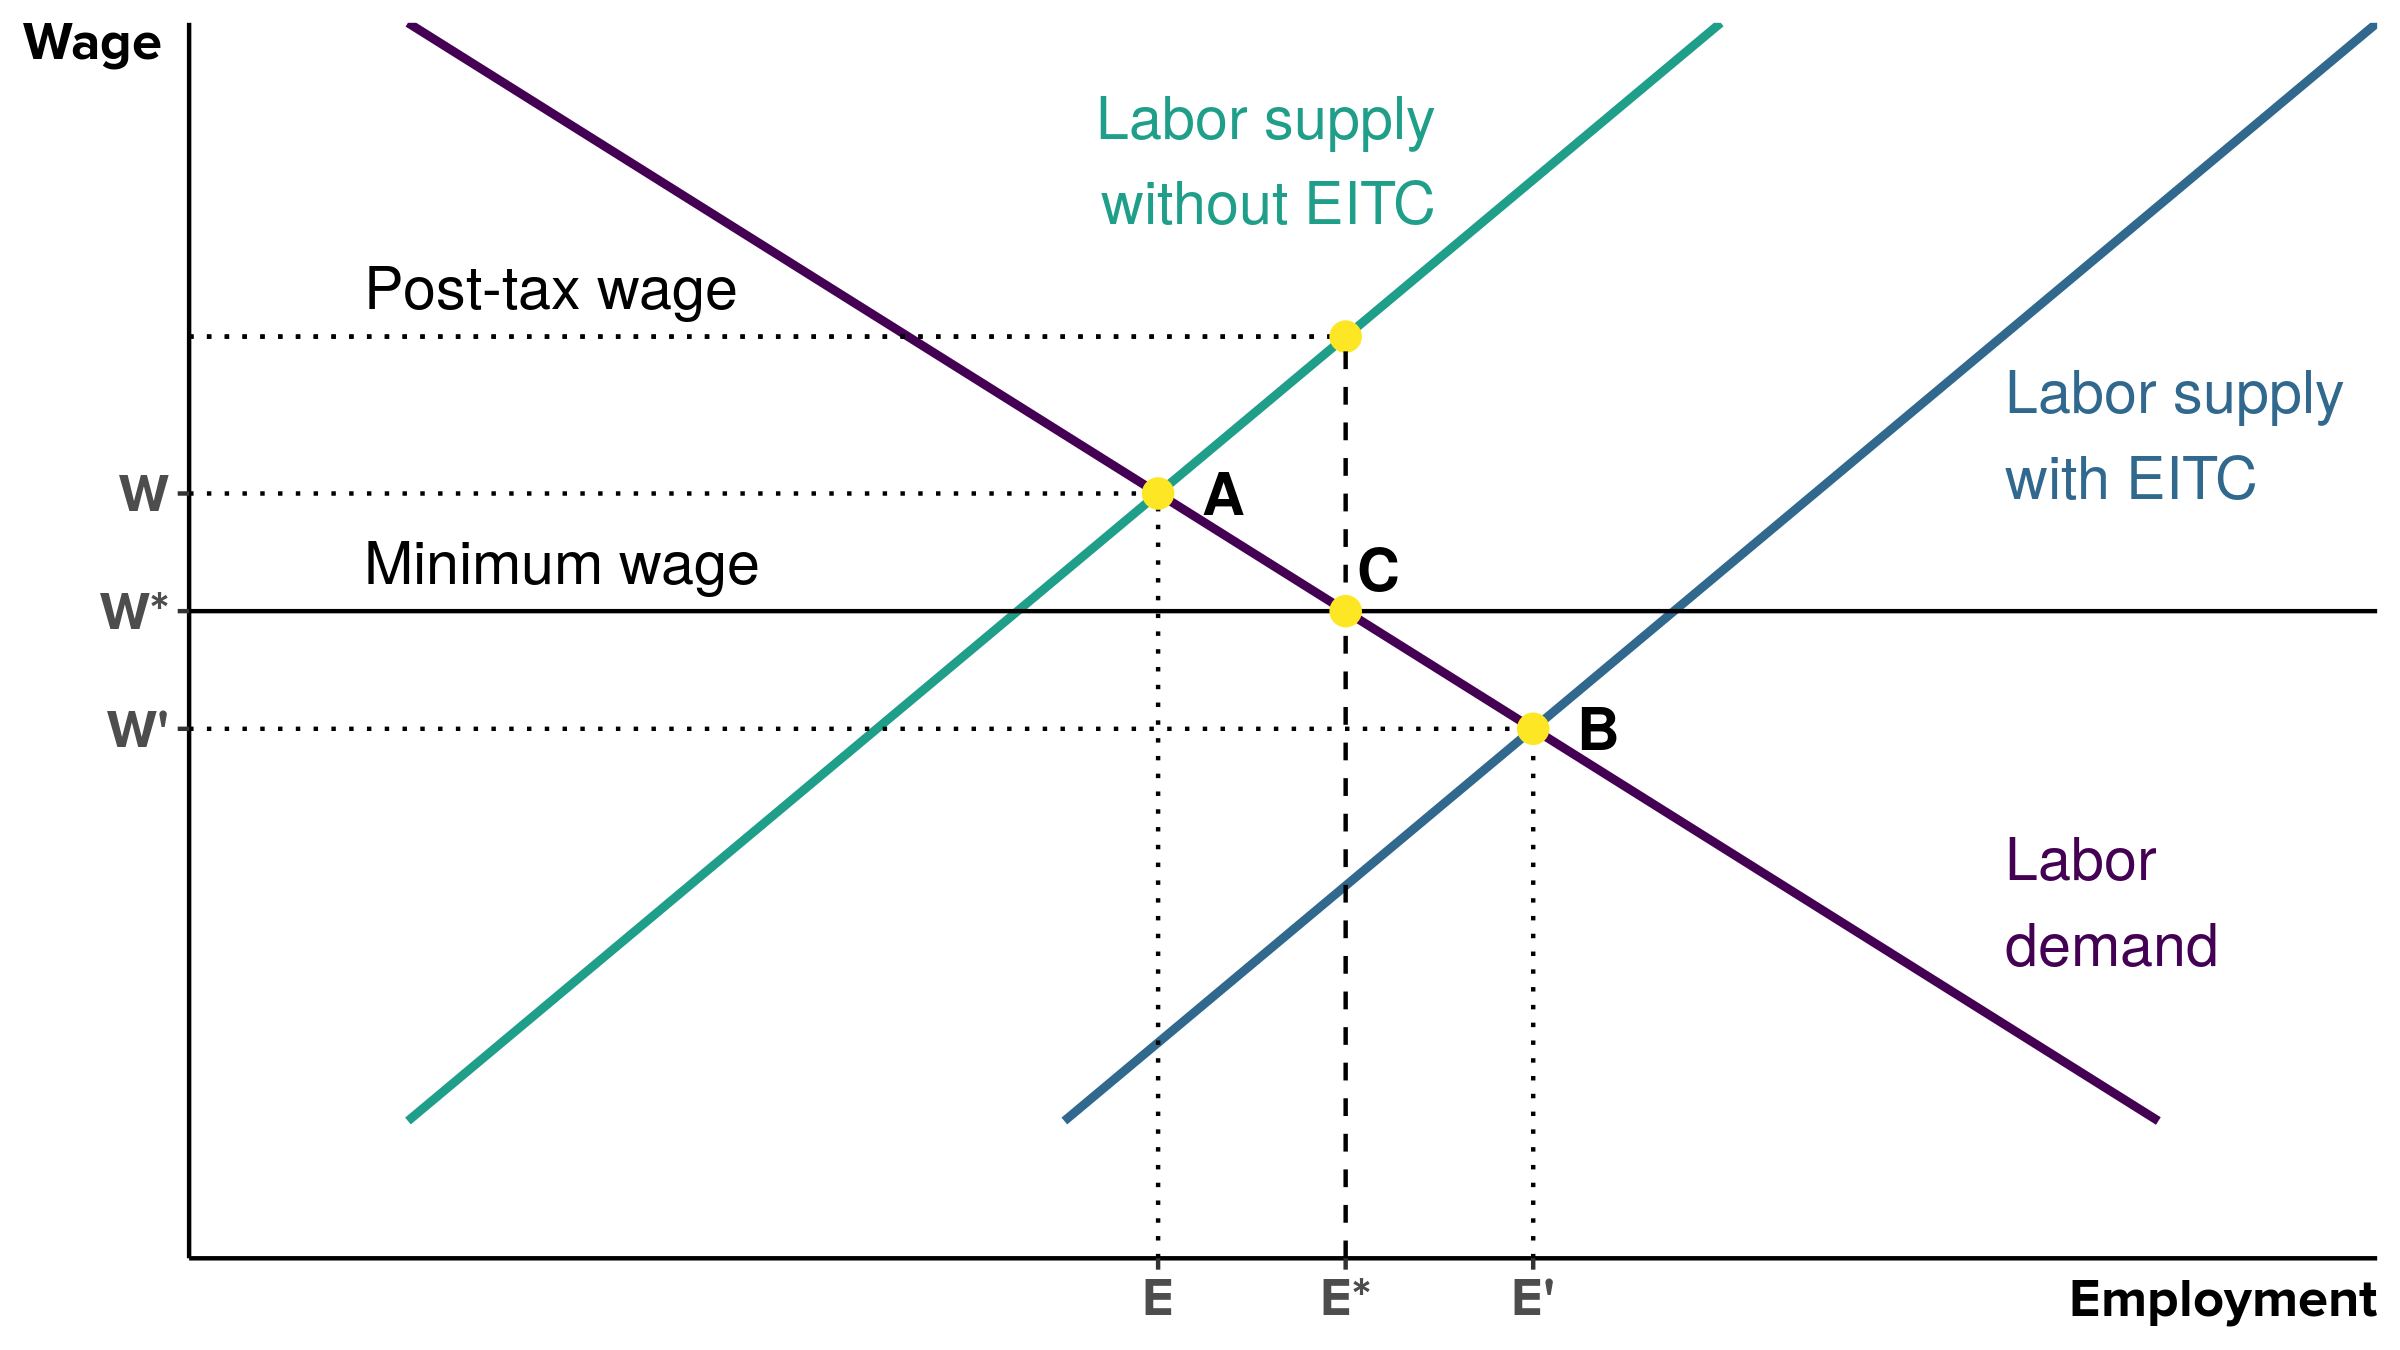 The minimum wage prevents pretax wages from falling due to increased labor supply: Employment and wage effects of the minimum wage in the presence of the EITC